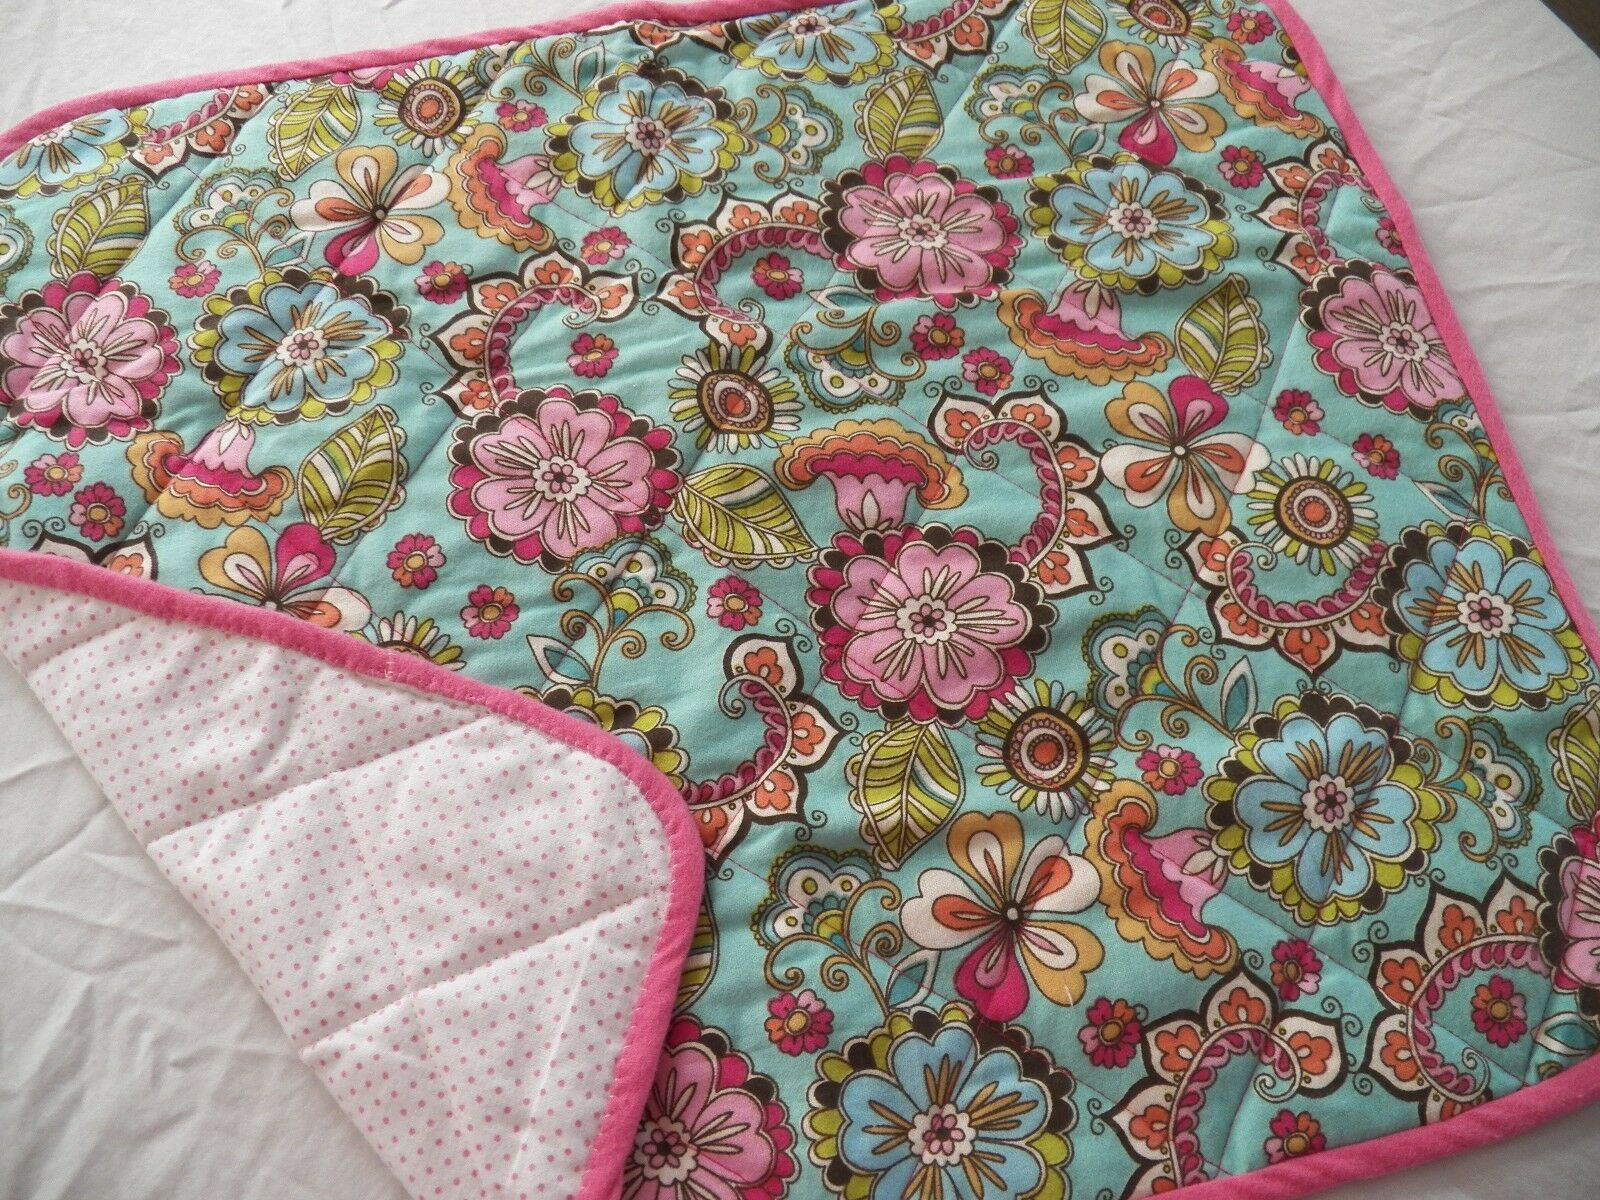 BABY CHANGING PAD Portable Diaper Travel Mat Cotton Washable Padded Handmade NEW 33